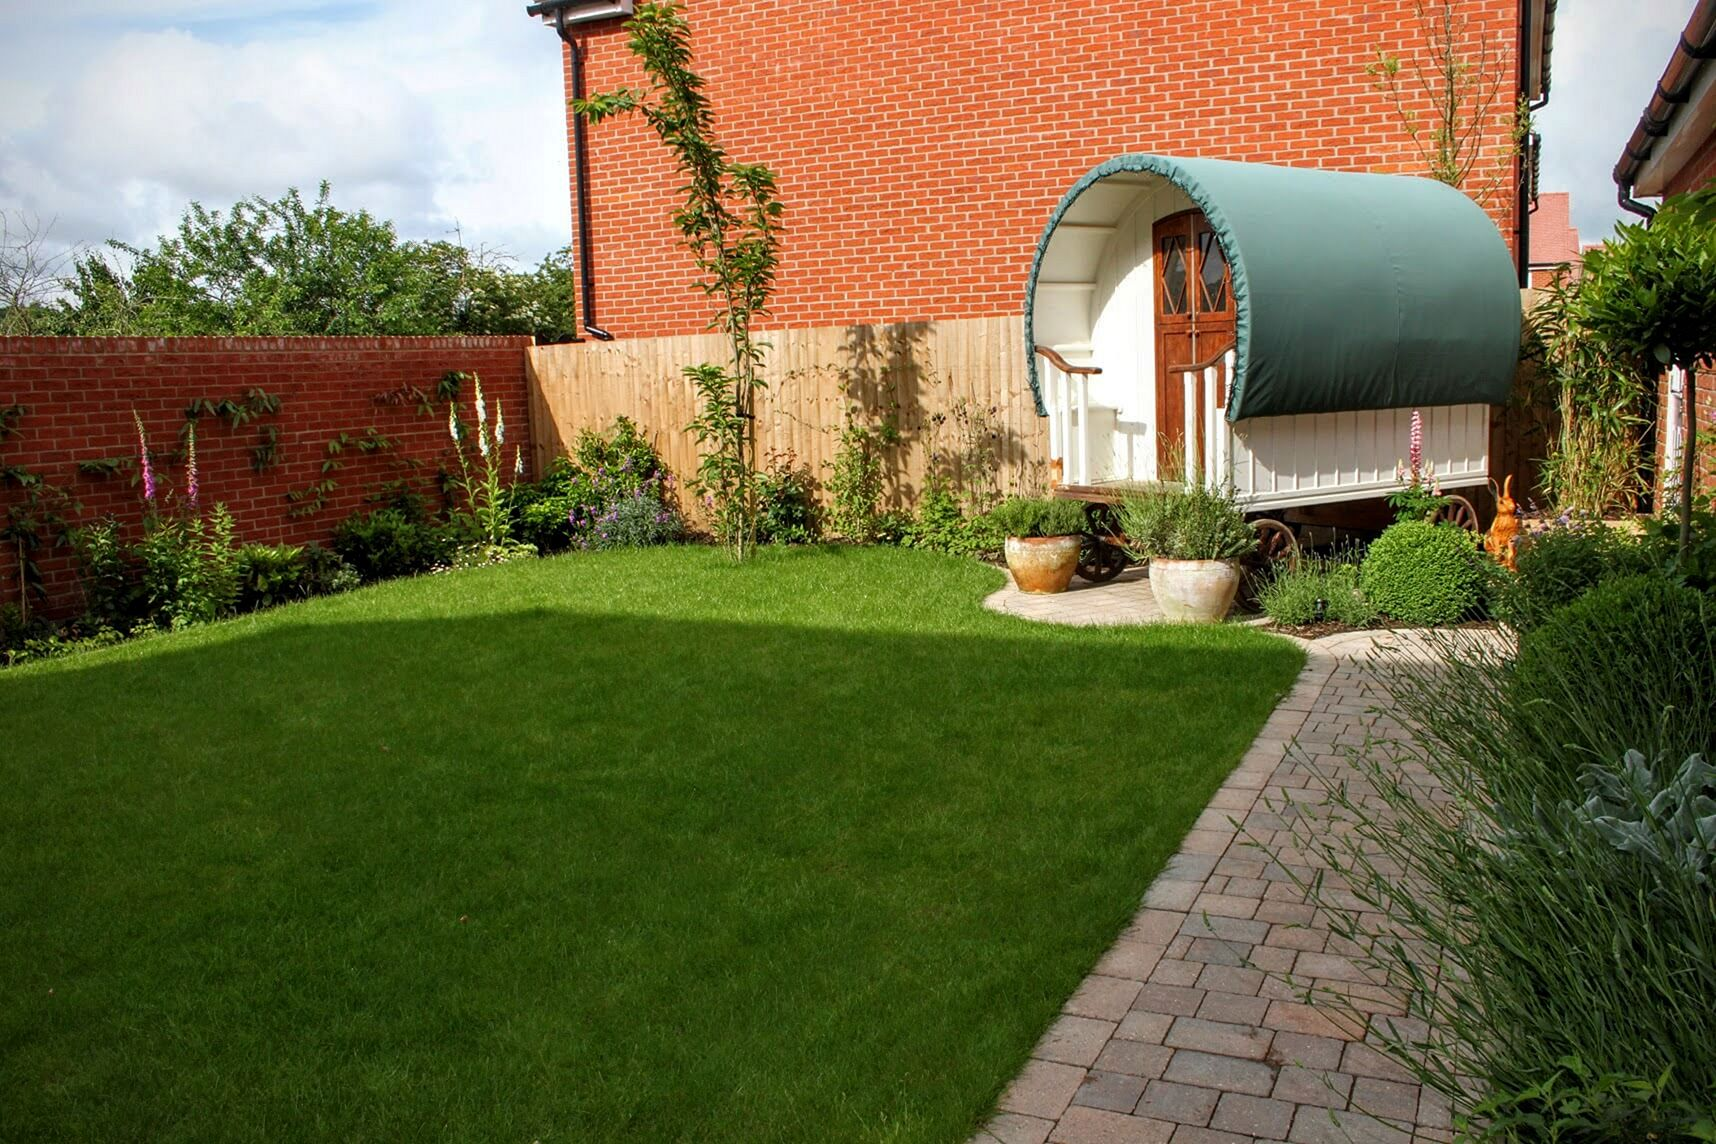 garden design ideas for new houses photo - 4